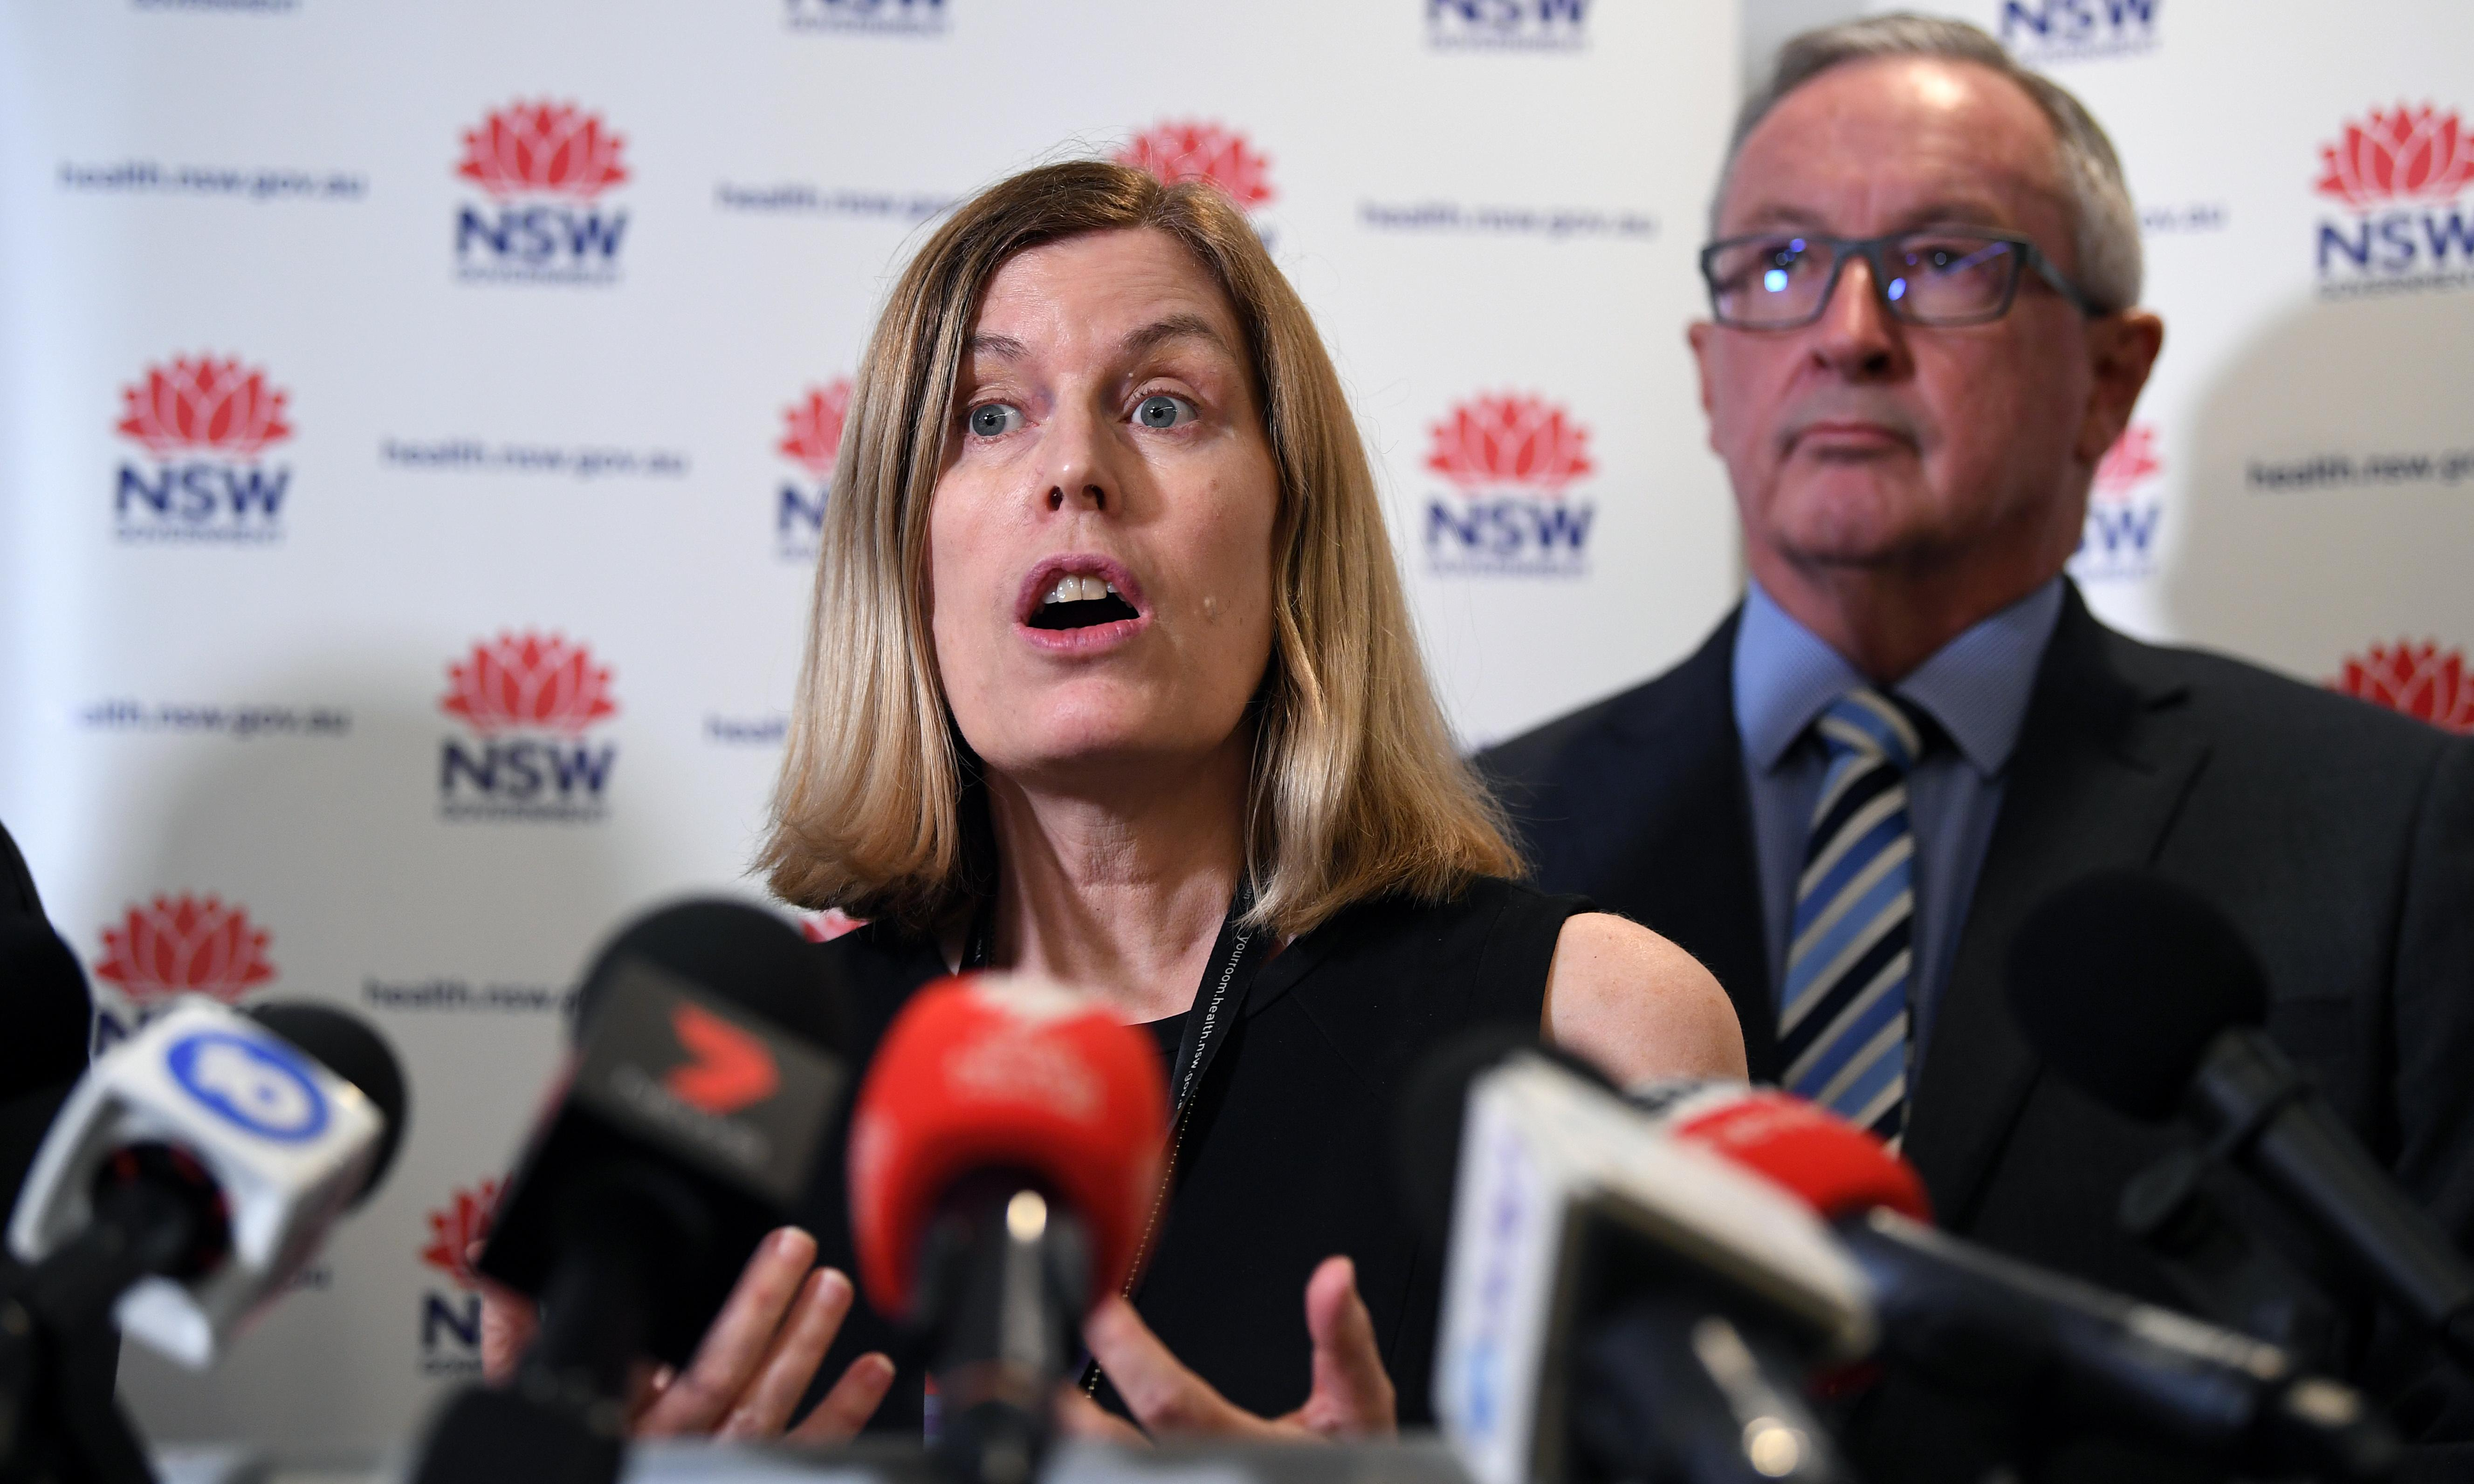 Coronavirus: NSW government asks students returning from China to stay home from school